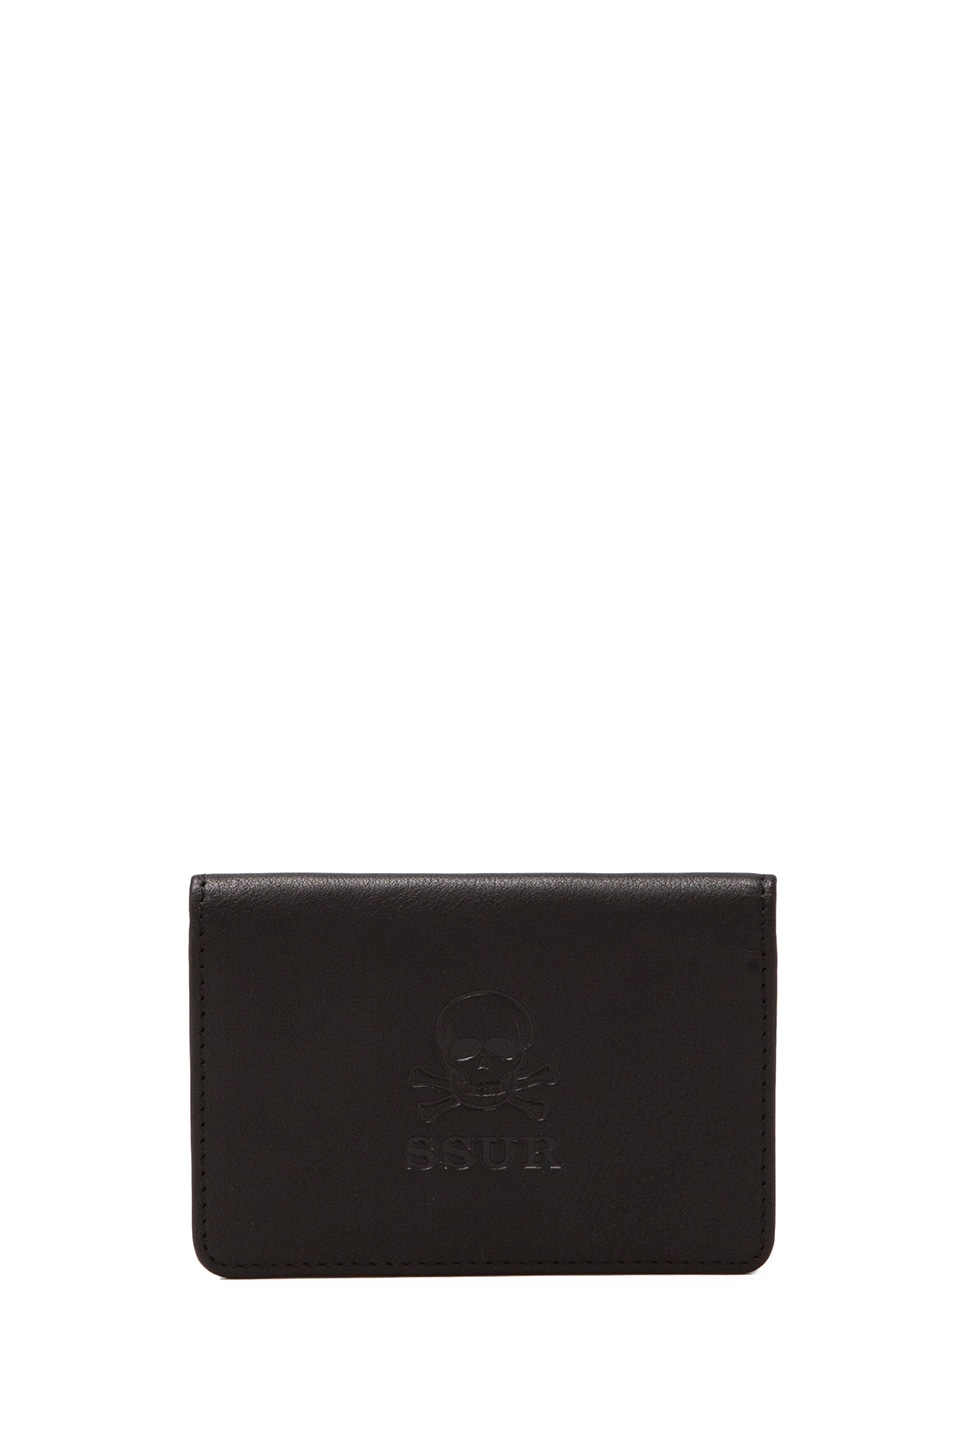 SSUR FYPM Card Holder in Matte Black